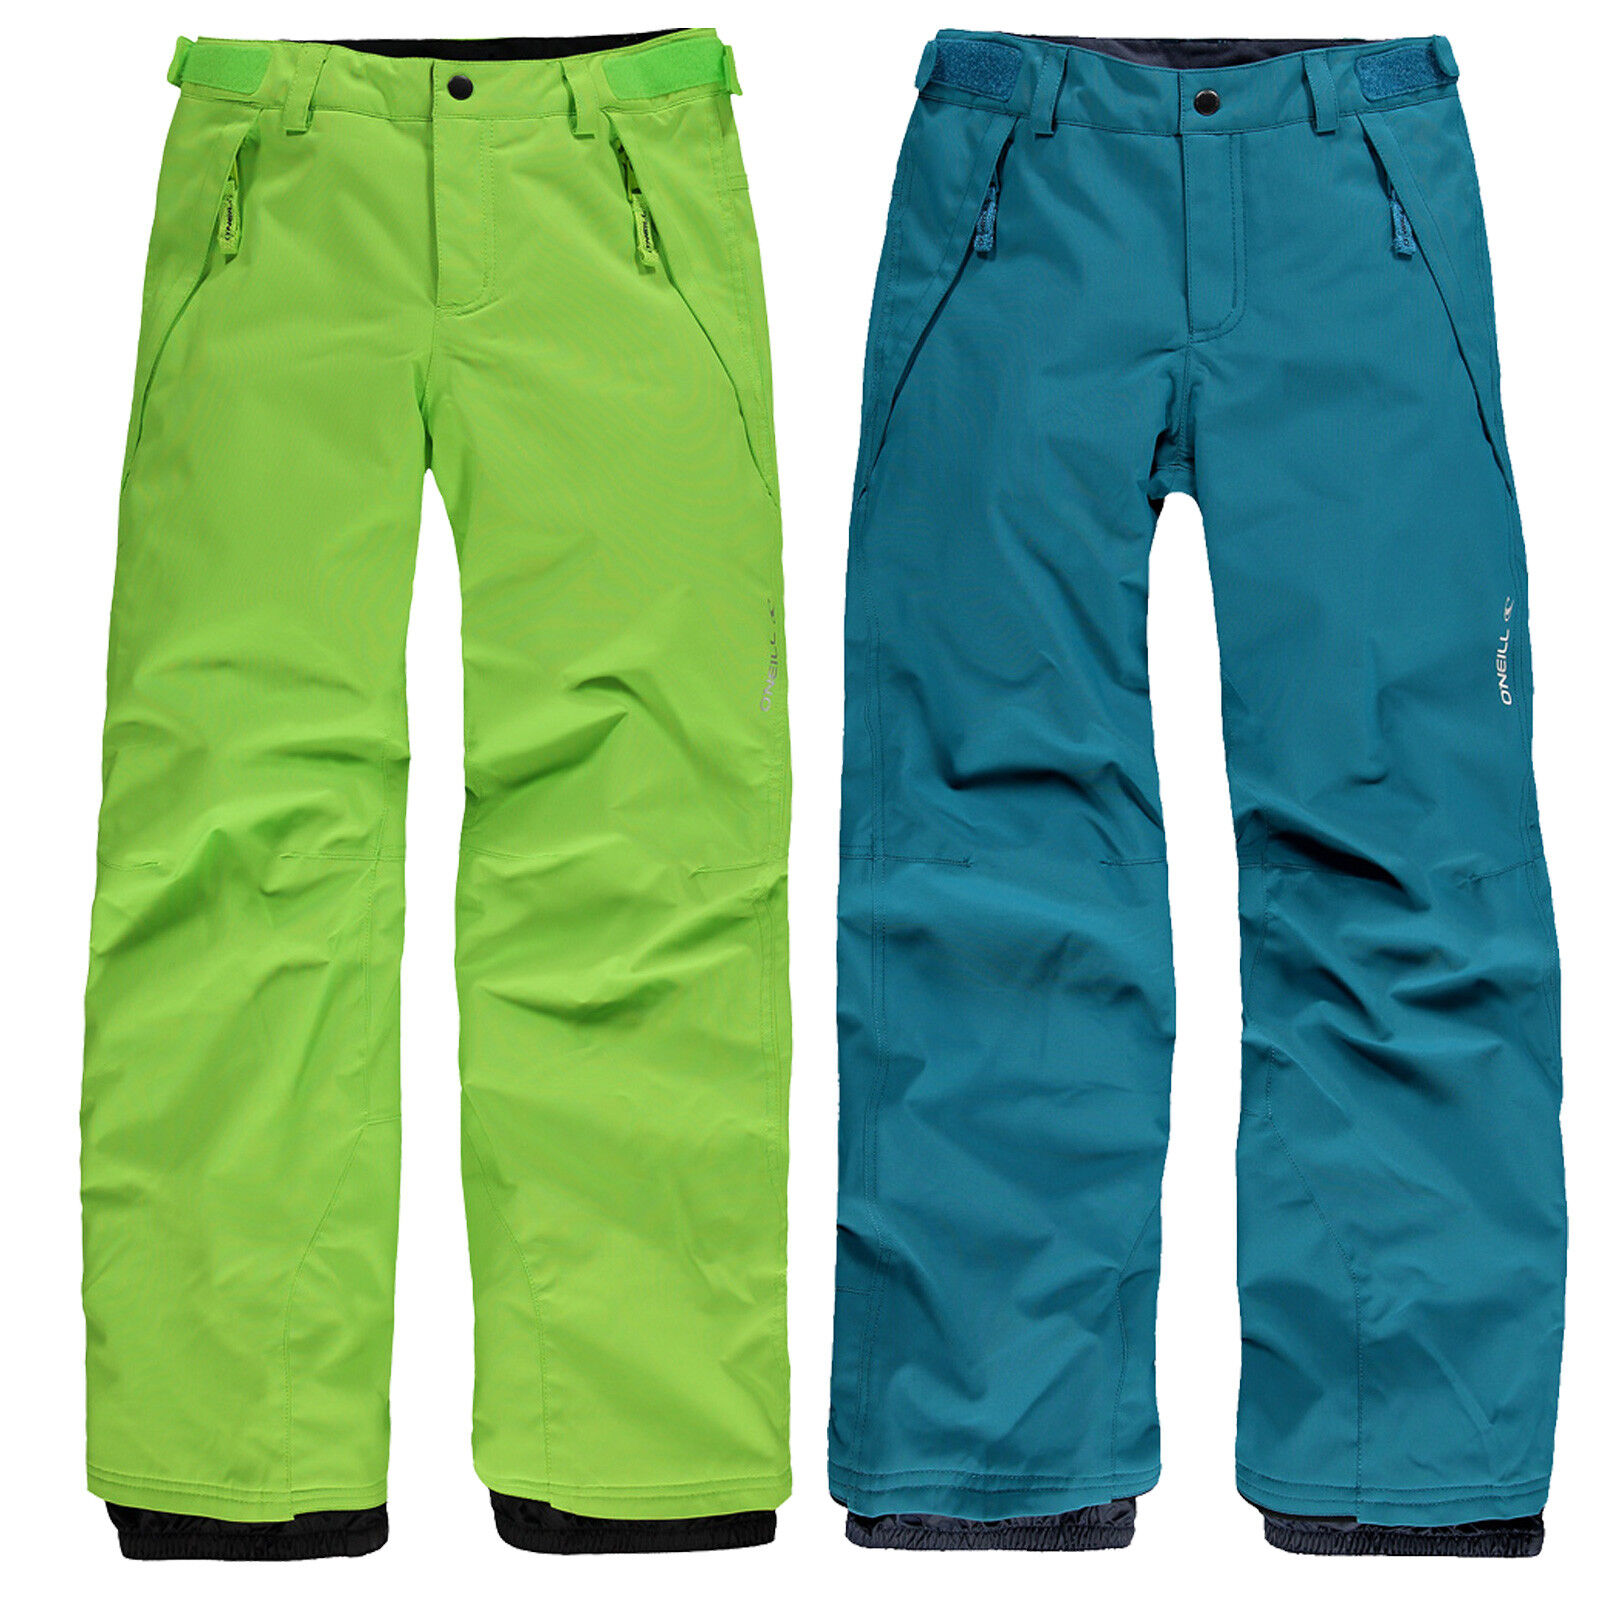 Oneill o'Neill Anvil Pant Kinder-Skihose Snowboard Snowpants Winter Trousers